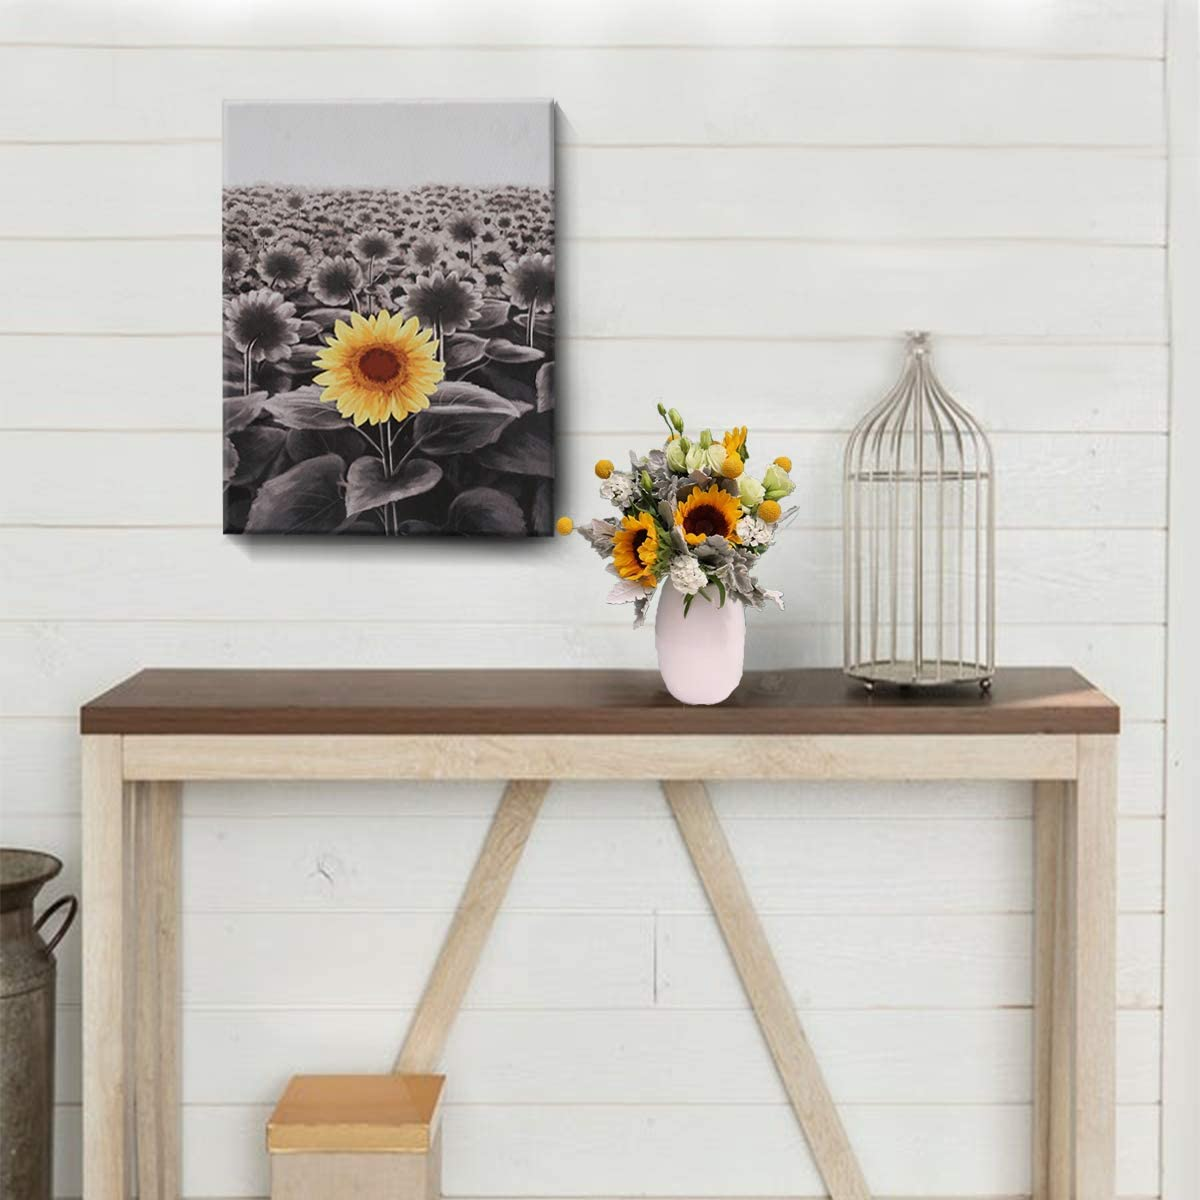 Sunflower Wall Art Inspirational Canvas Print for Bathroom Wall Décor Black and White Yellow Flowers Field Painting Funny Floral Picture Modern Framed Posters Office Classroom Home Decor 12x16in